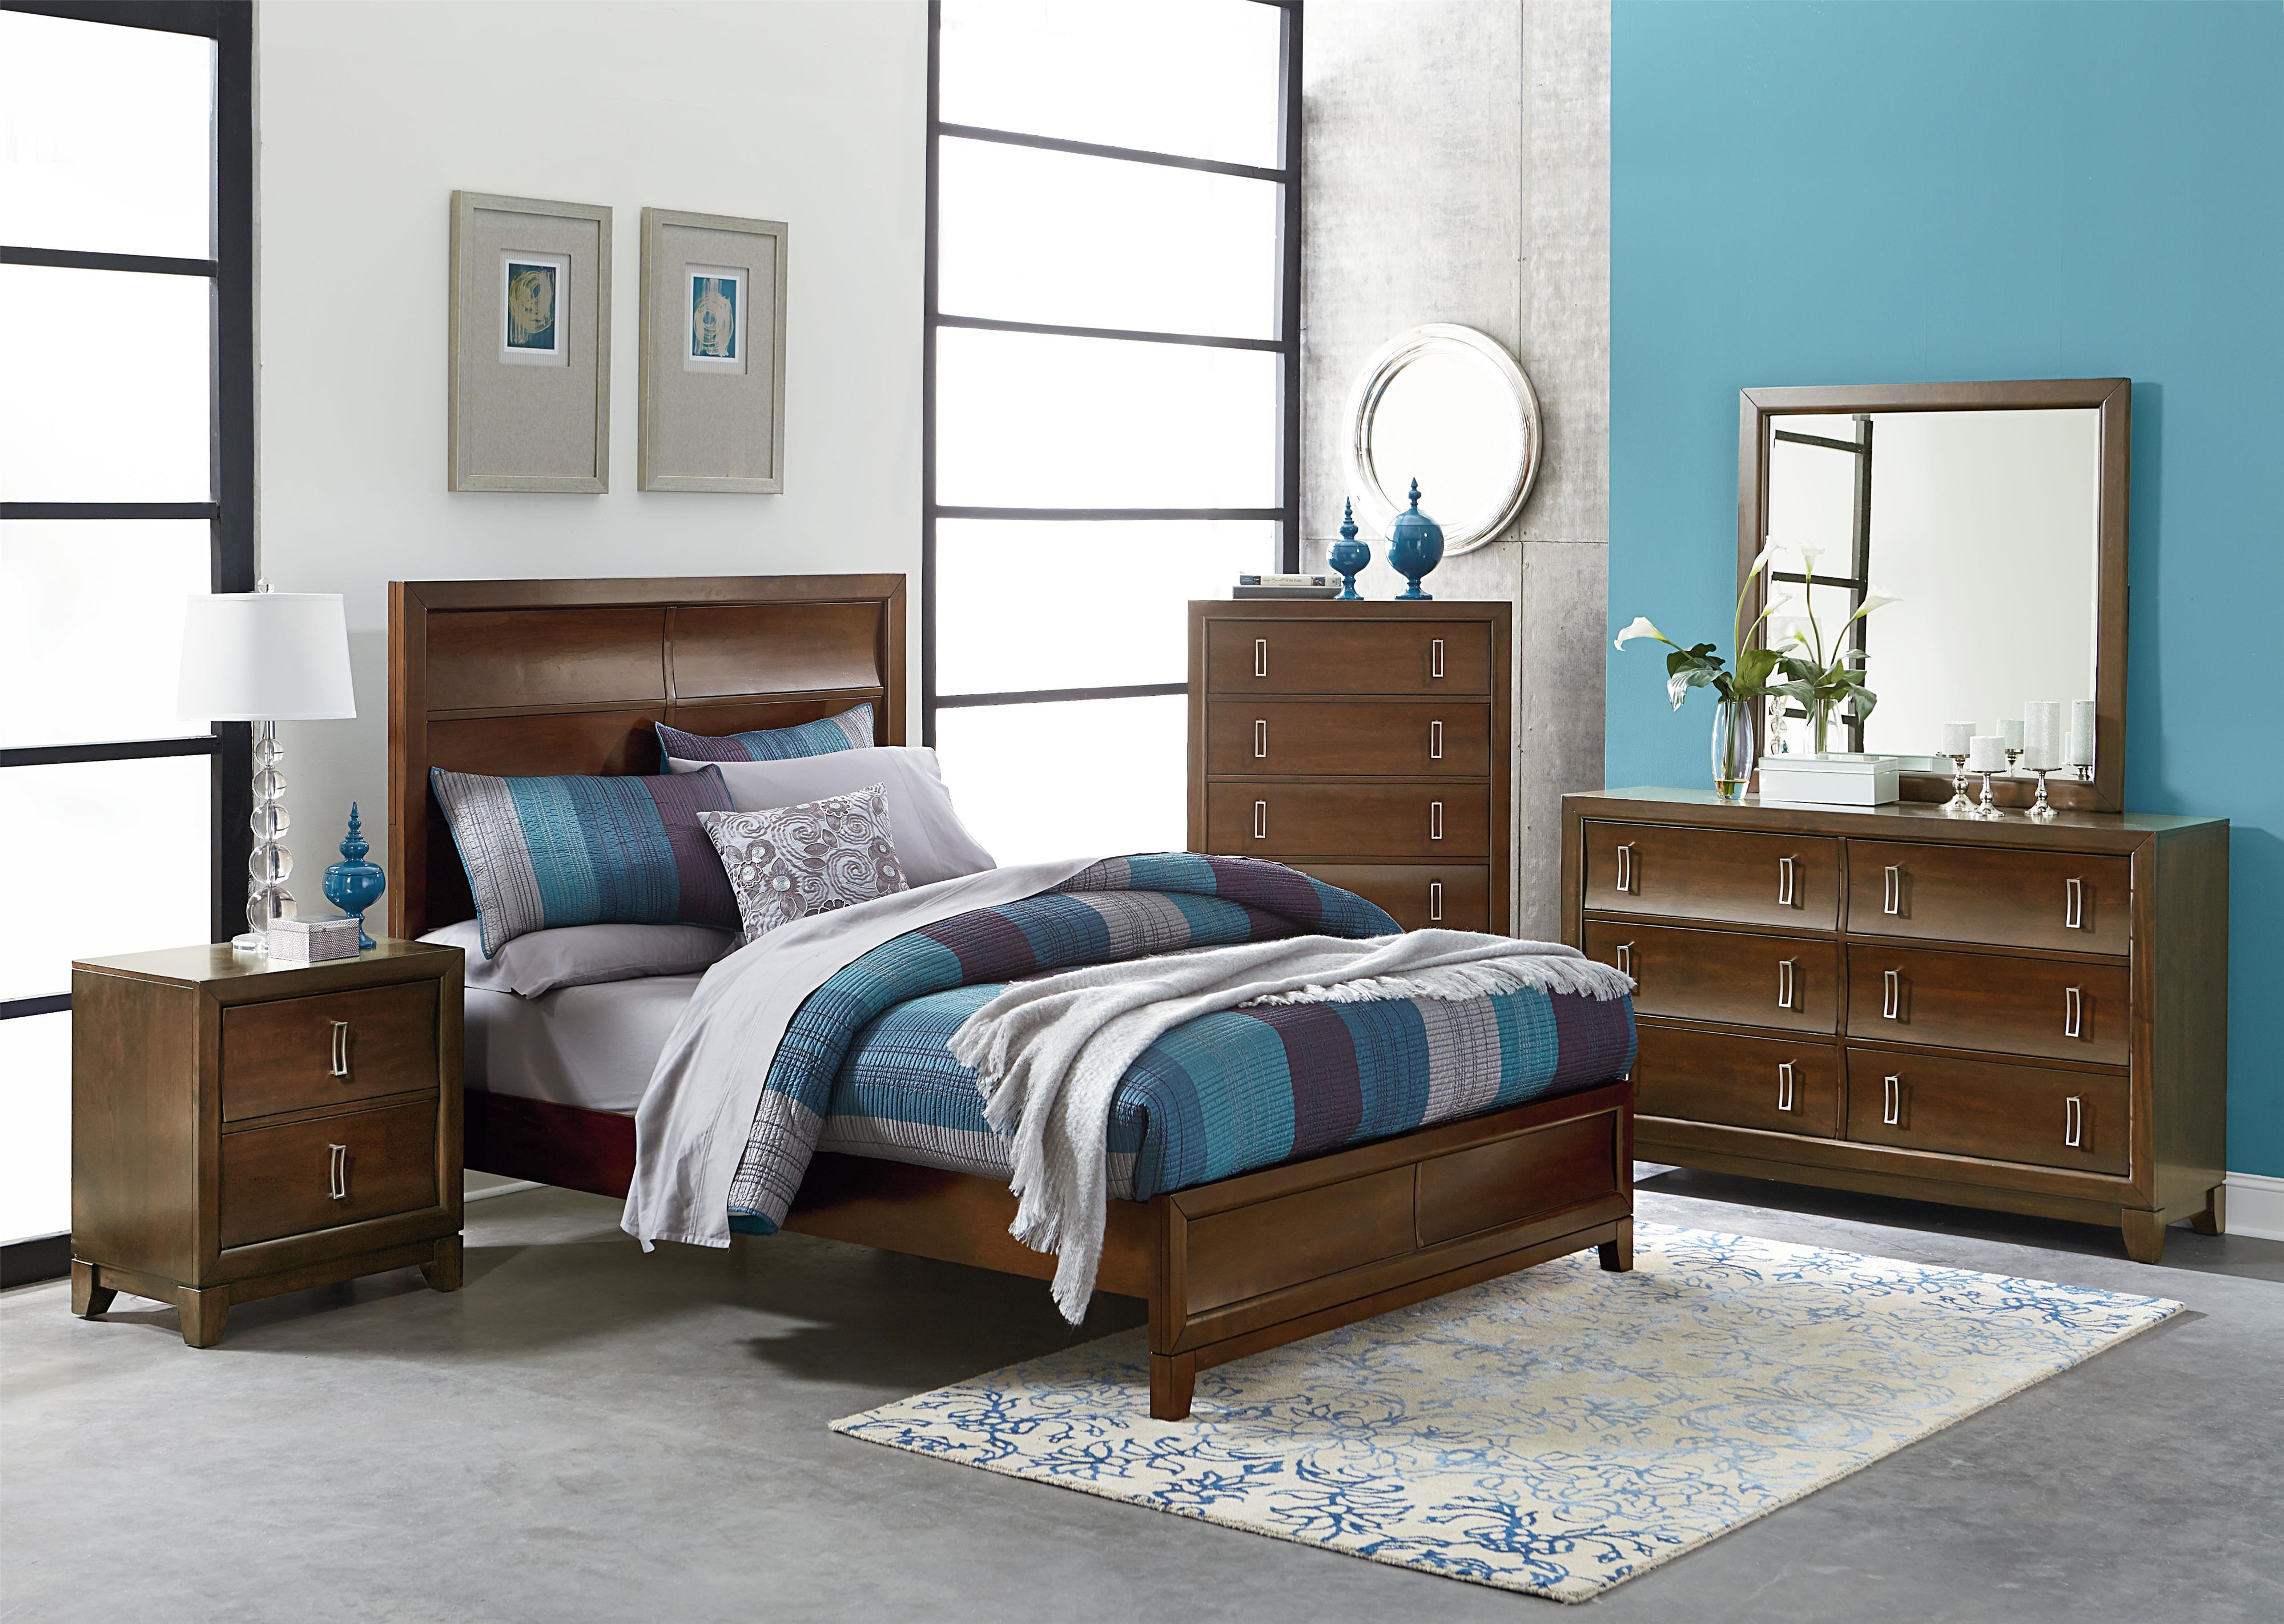 Standard Furniture Amanoi Full Bedroom Group - Item Number: 86800 F Bedroom Group 1